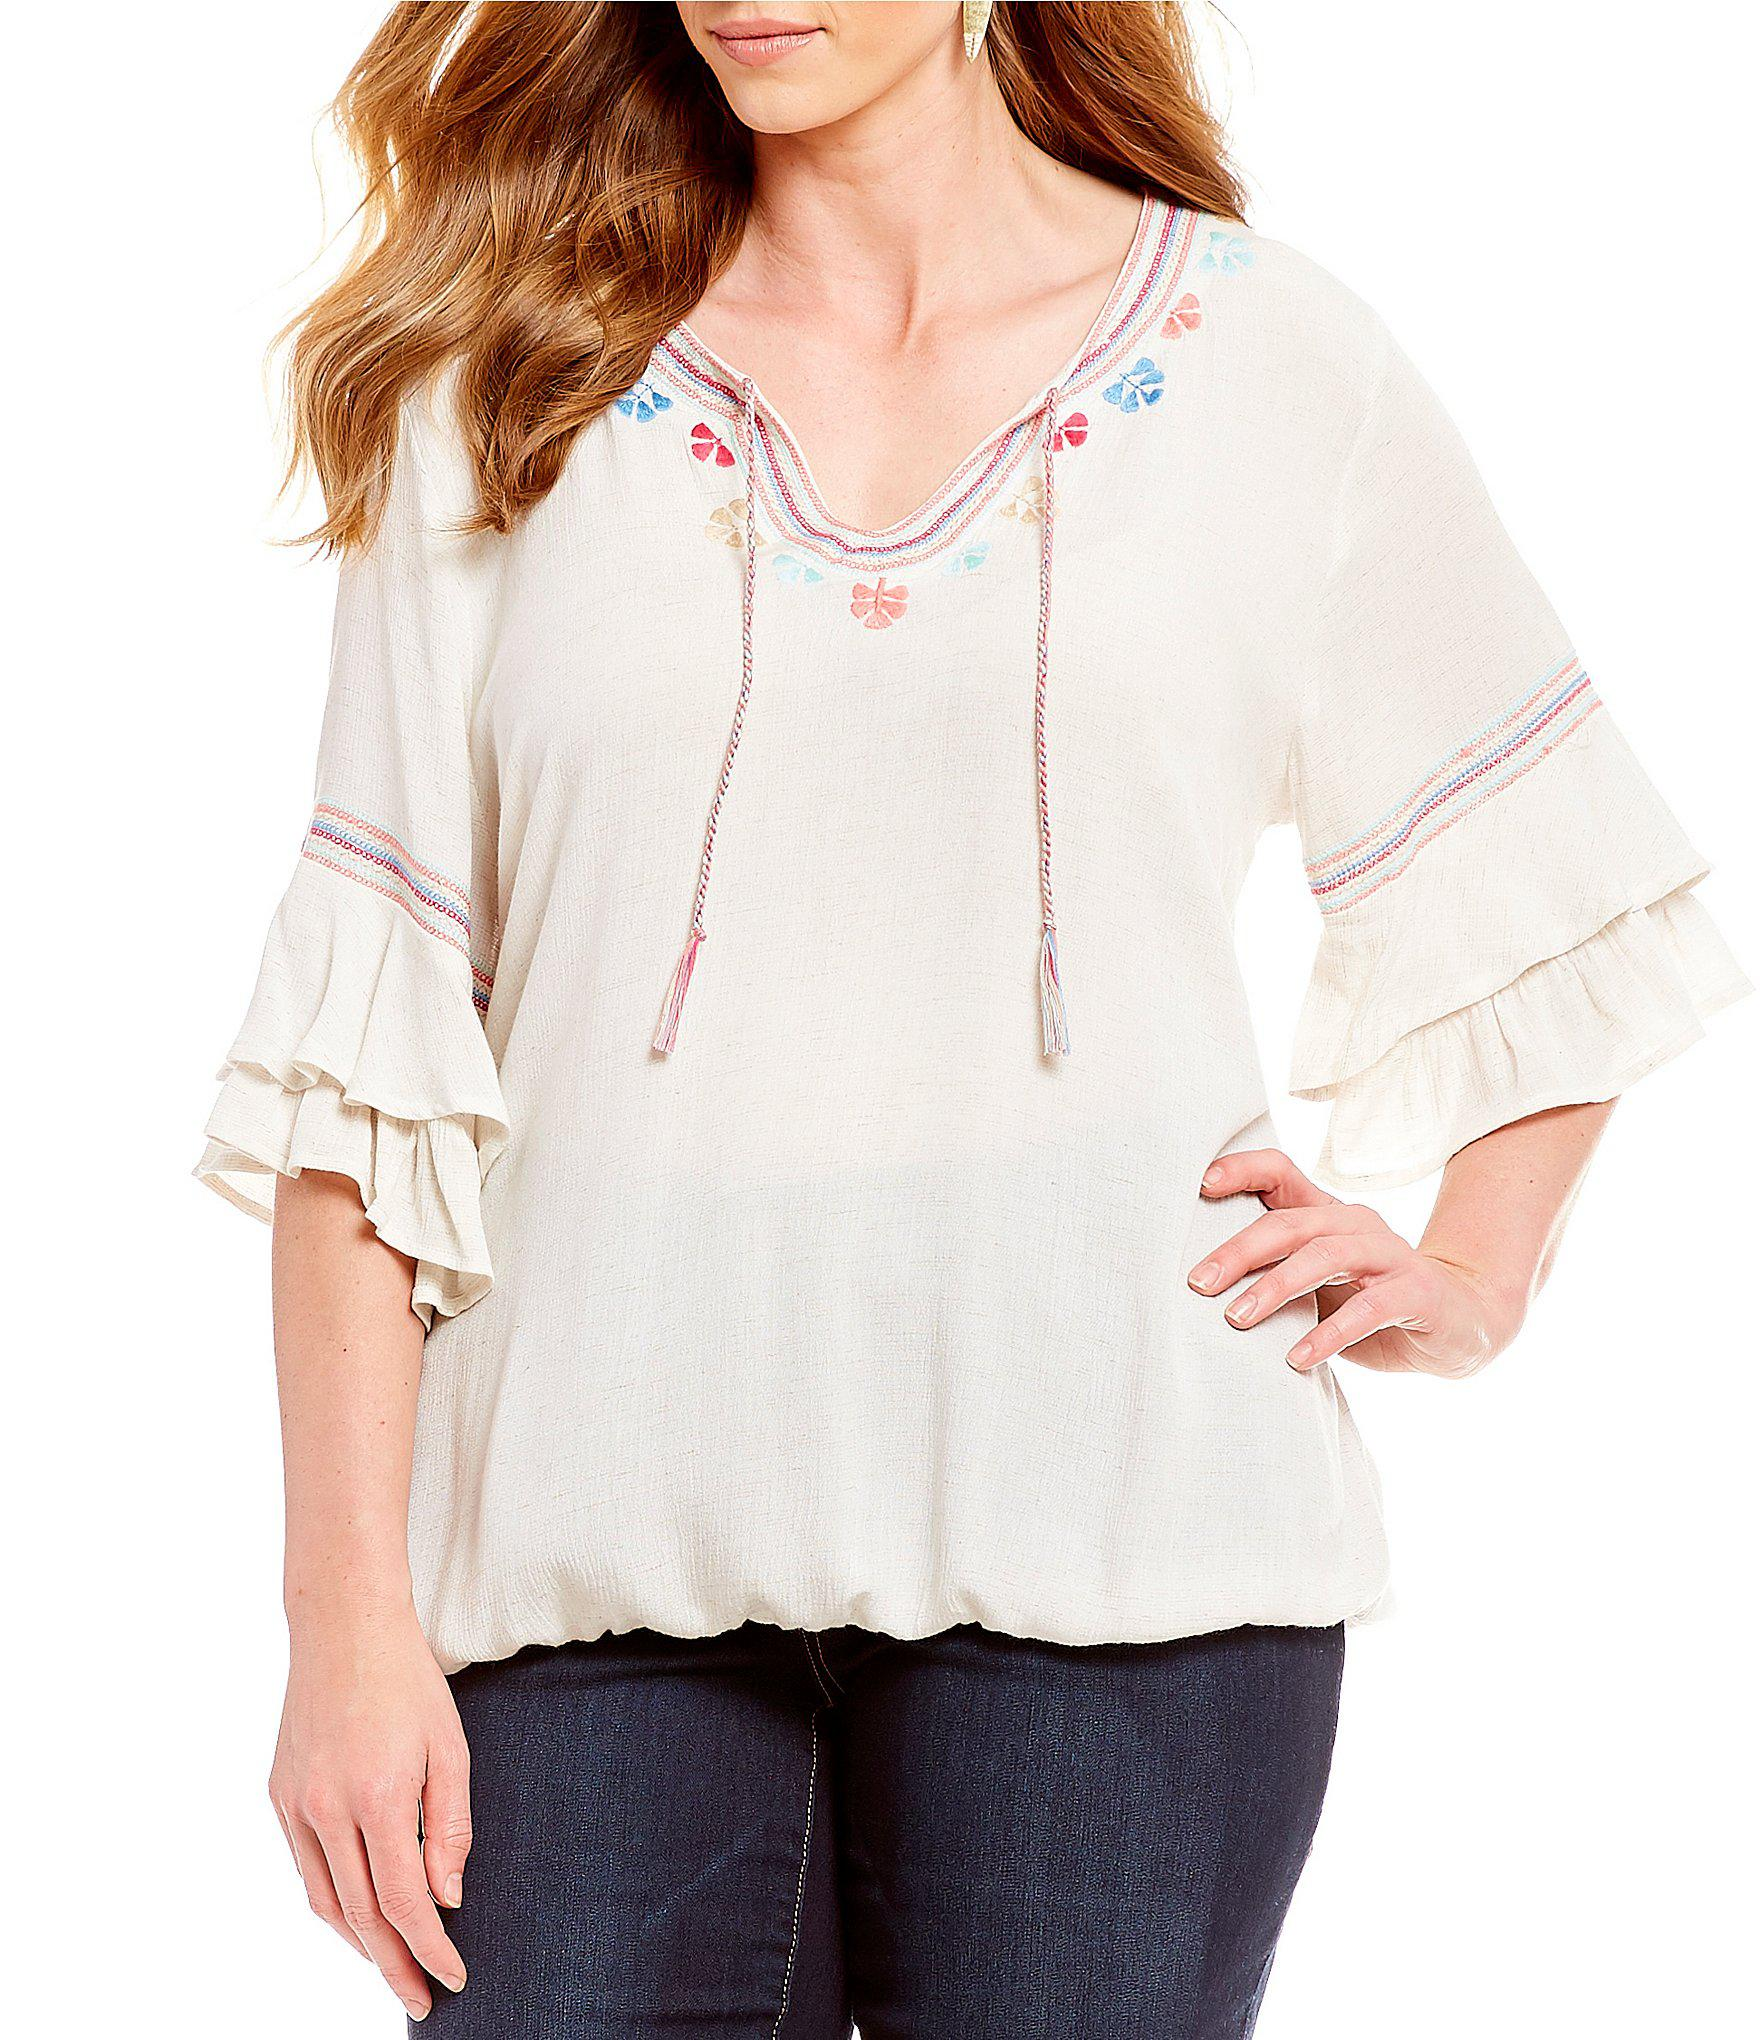 f6918920c23 Lyst - Democracy Plus Size Double Flounce Sleeve Embroidered Detail ...